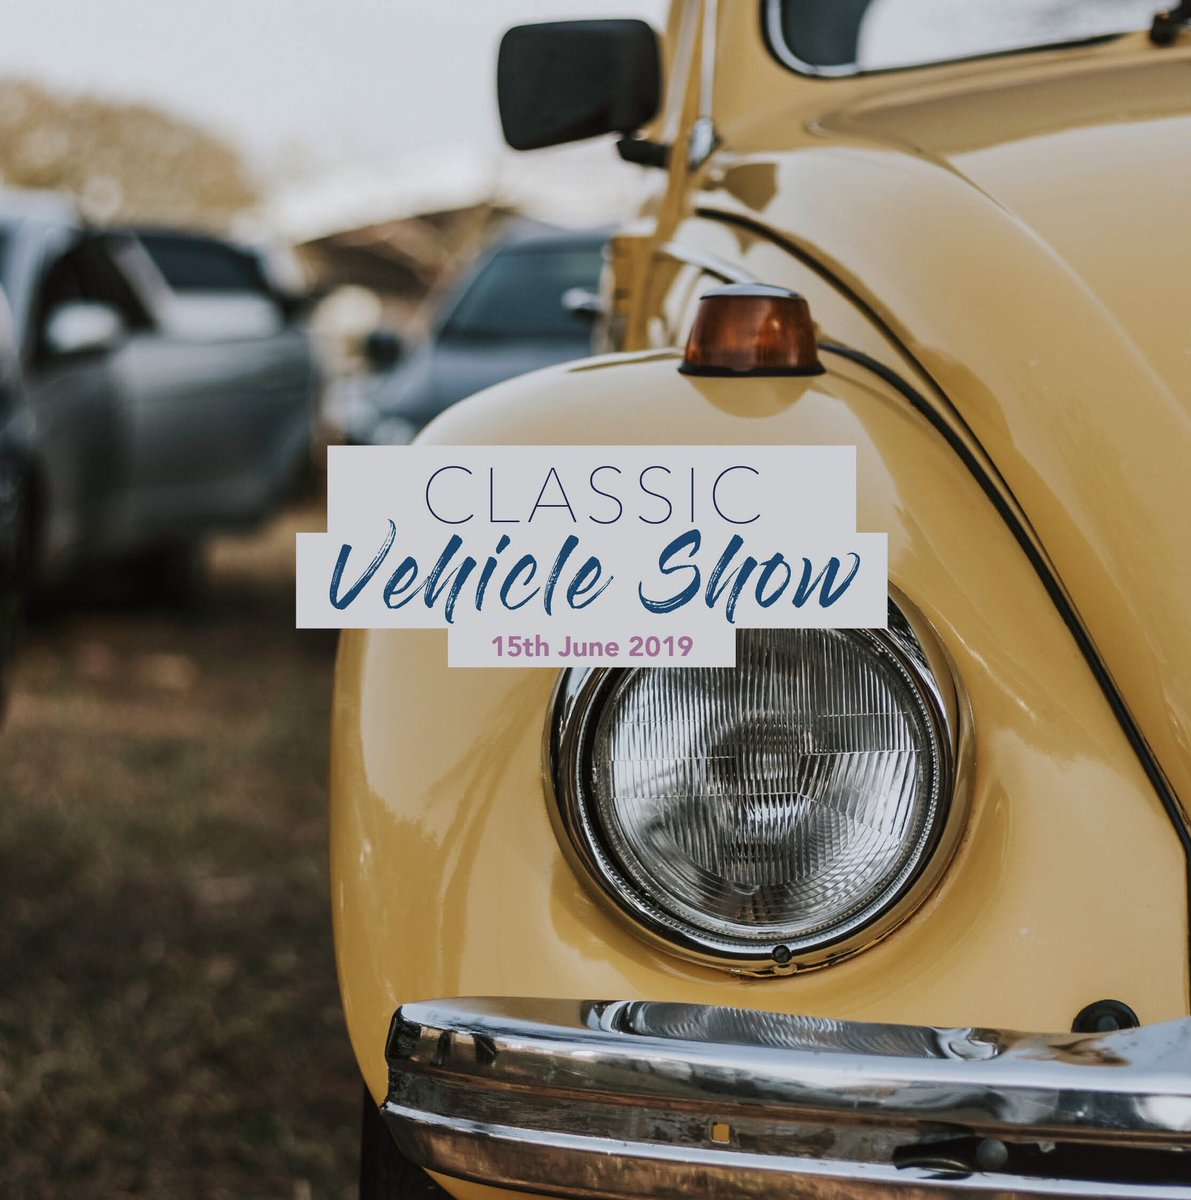 Mark your diaries 📔 This year's #classicvehicleshow will be on June 15th from 10am - 4pm 🚖🏎 . . . #hiddengems #takeacloserlook #edinburghswestend #thisisedinburgh #classiccars #edinburgh #scotland